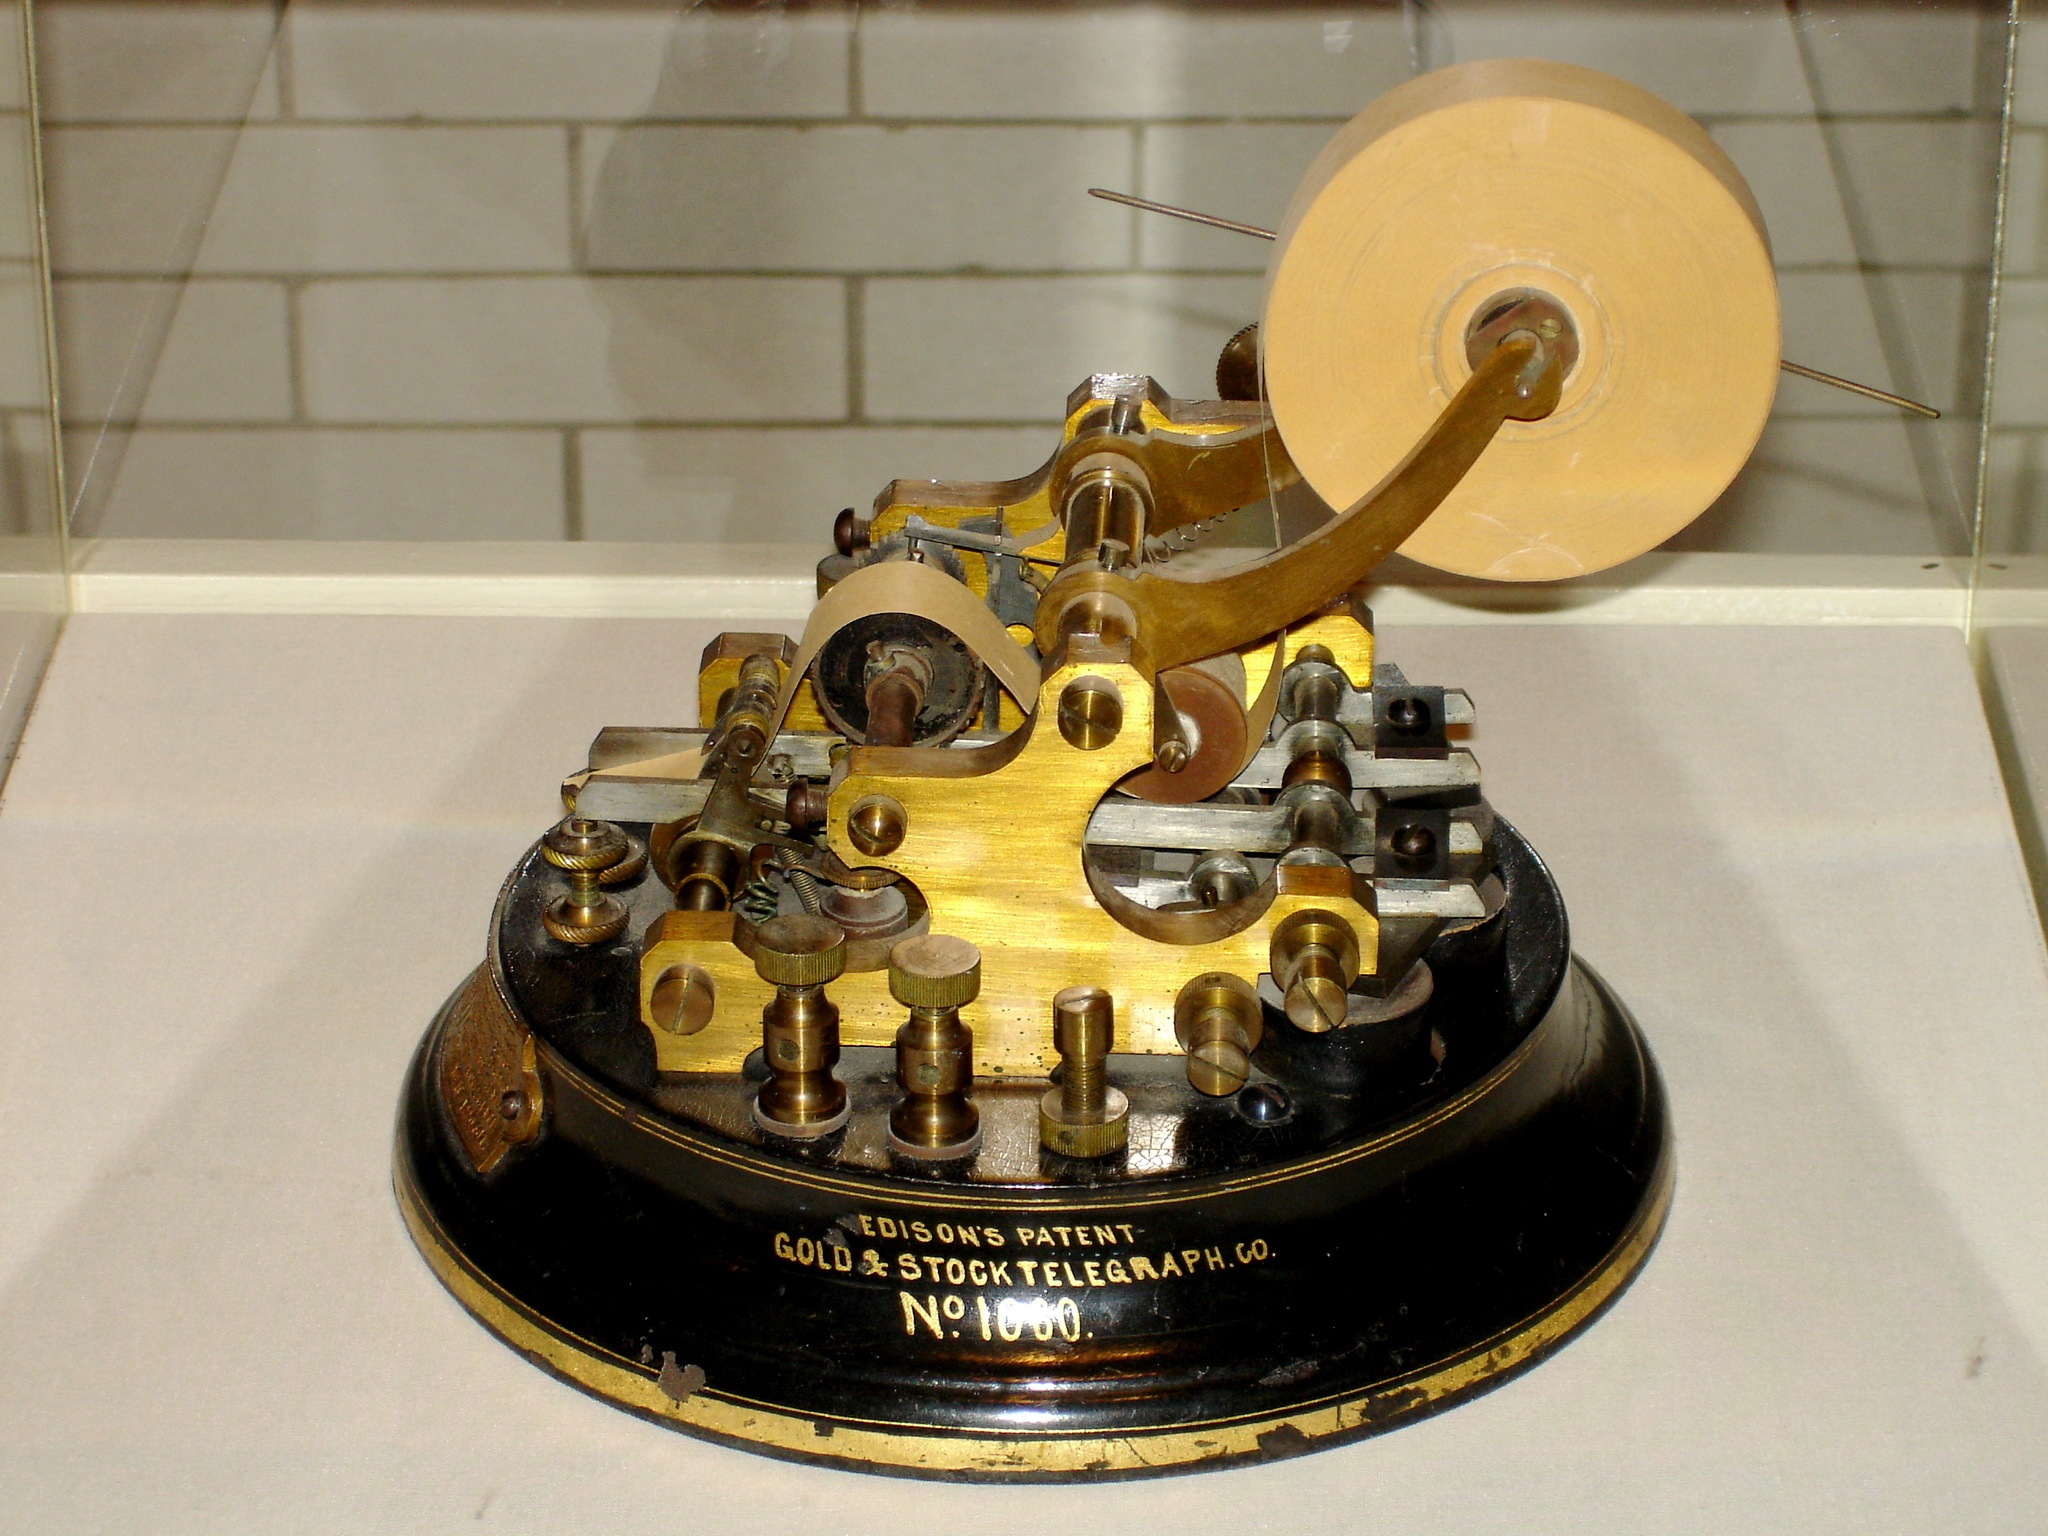 Stock Photo Images Stock telegraph ticker machine